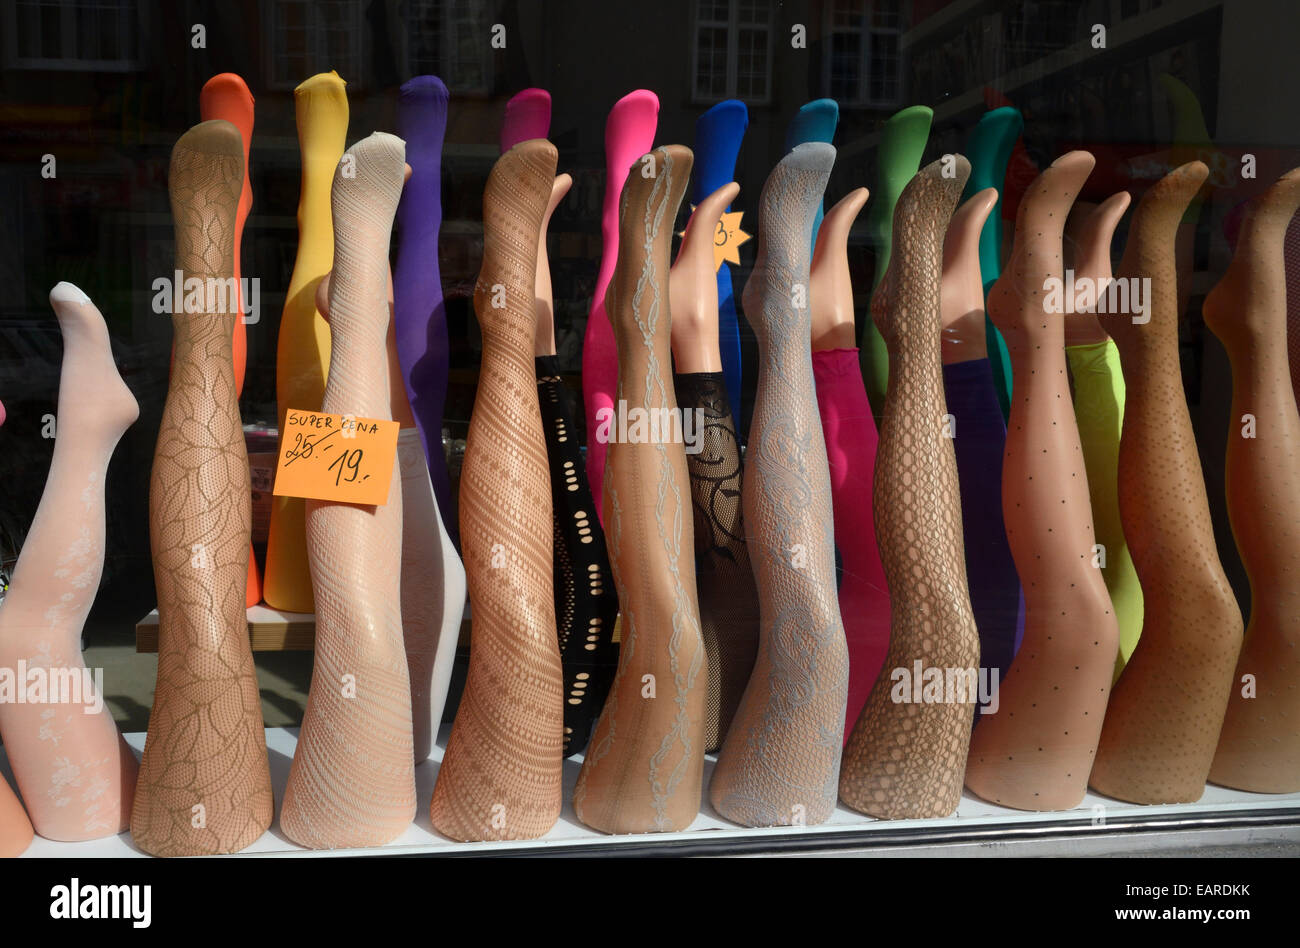 Display of mannekins' legs with stockings or tights in a shop window, Gdansk, Pomeranian Voivodeship, Poland - Stock Image